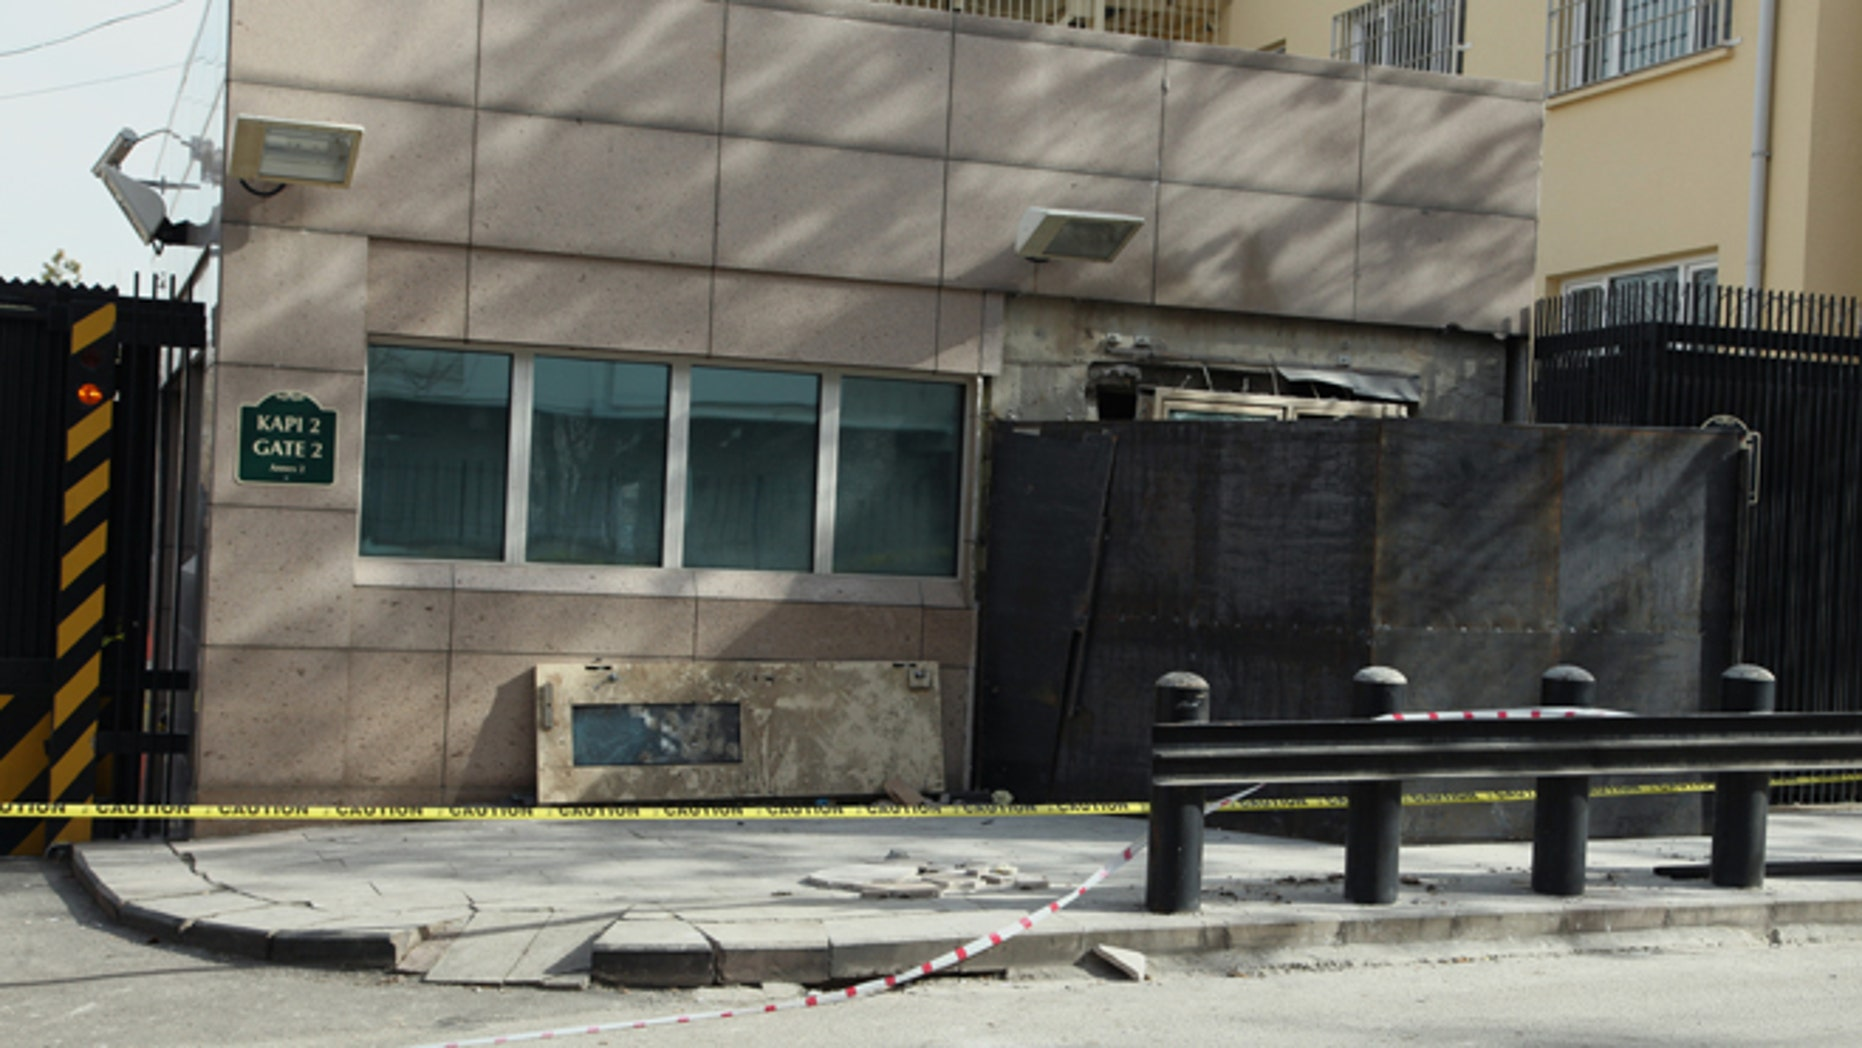 Feb. 4, 2013: The side entrance of the U. S. embassy, closed with metal sheeting, three days after a suicide bomber attack, in Ankara, Turkey. The suicide bomber who struck the U.S. Embassy in Ankara spent five years in prison on terrorism charges but was released after being diagnosed with a hunger strike-related brain disorder, officials said Saturday.